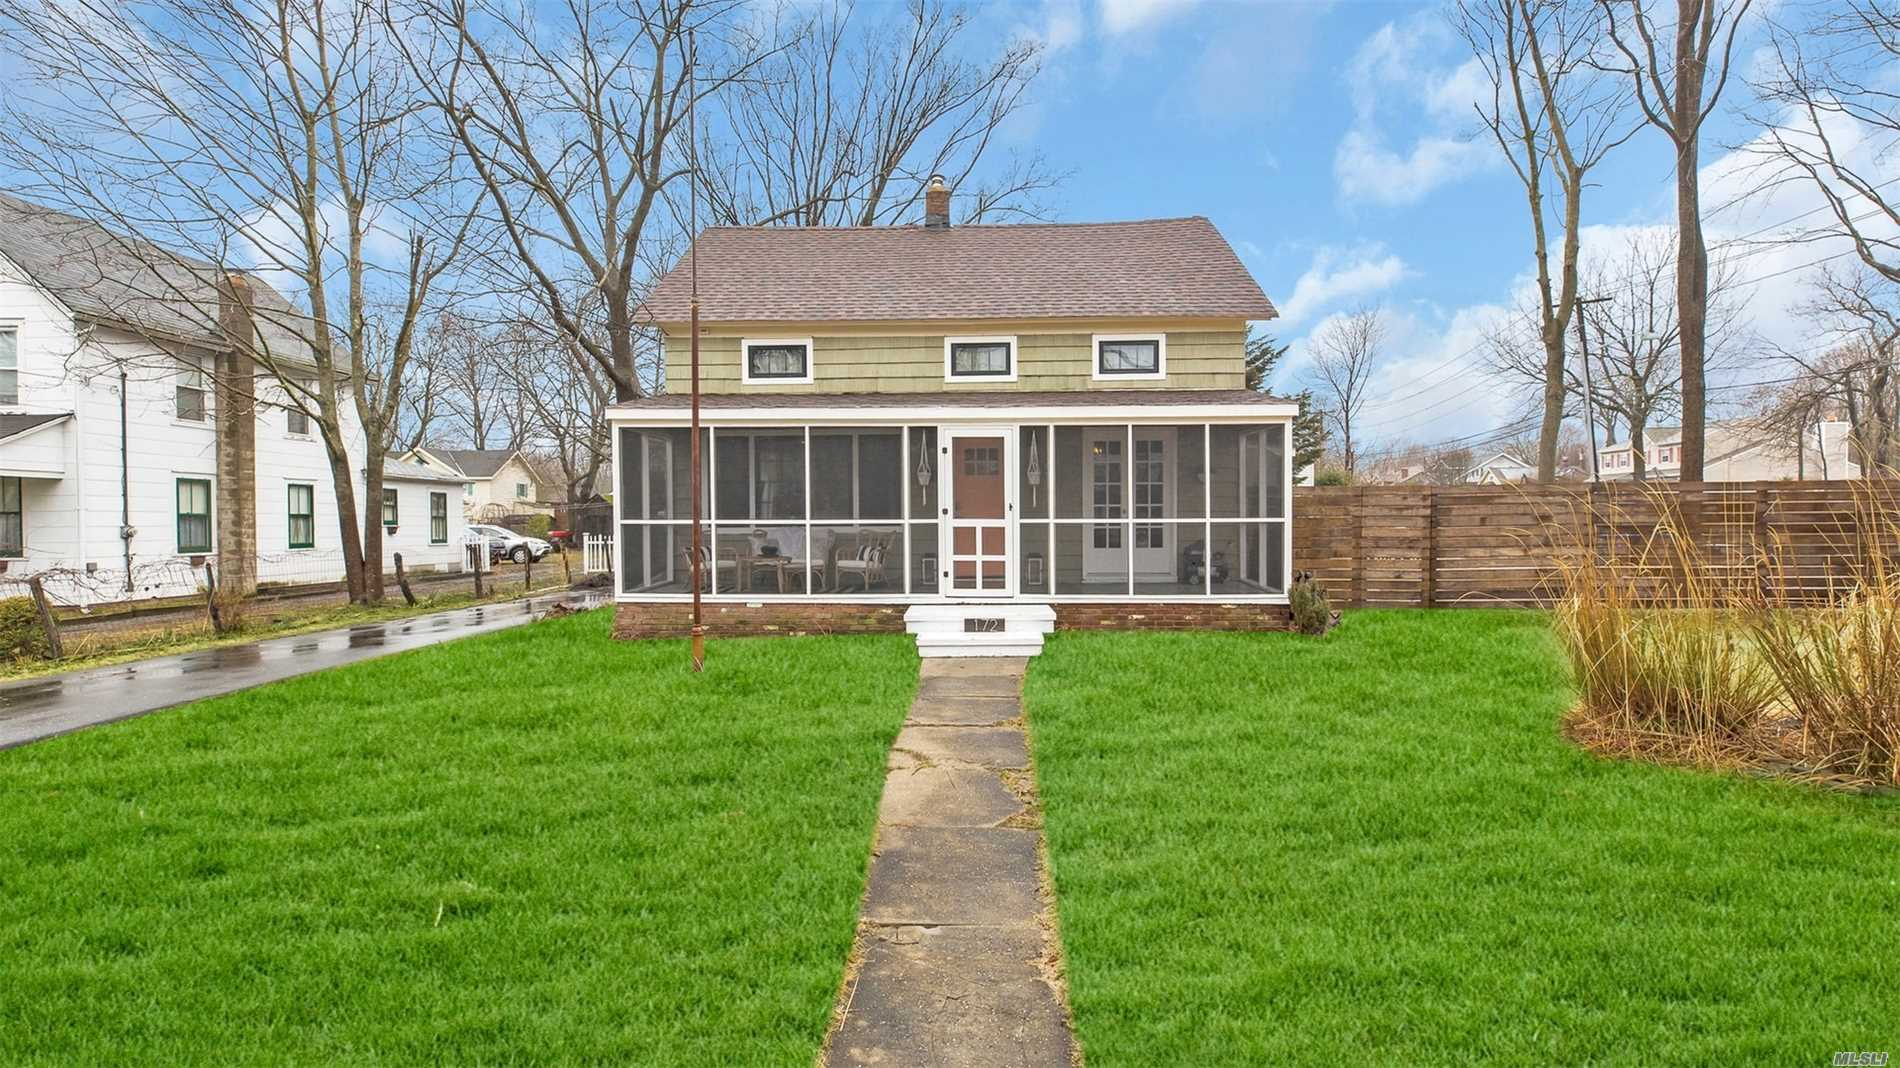 Opportunity knocks for the smart buyer for this 3 BR colonial close to Town. No details spared in a recent $60K renovation-- includes NEW walls, moldings, insulation, wiring, plumbing, bathrooms, flooring, doors, Pella window, new guest bedroom and so much more! Features enclosed porch, new shed, deck, fence & patio pavers. Kitchen is functional with new SS appliances but renovation not completed because owners are relocating. Great opportunity for buyers to make it their own.